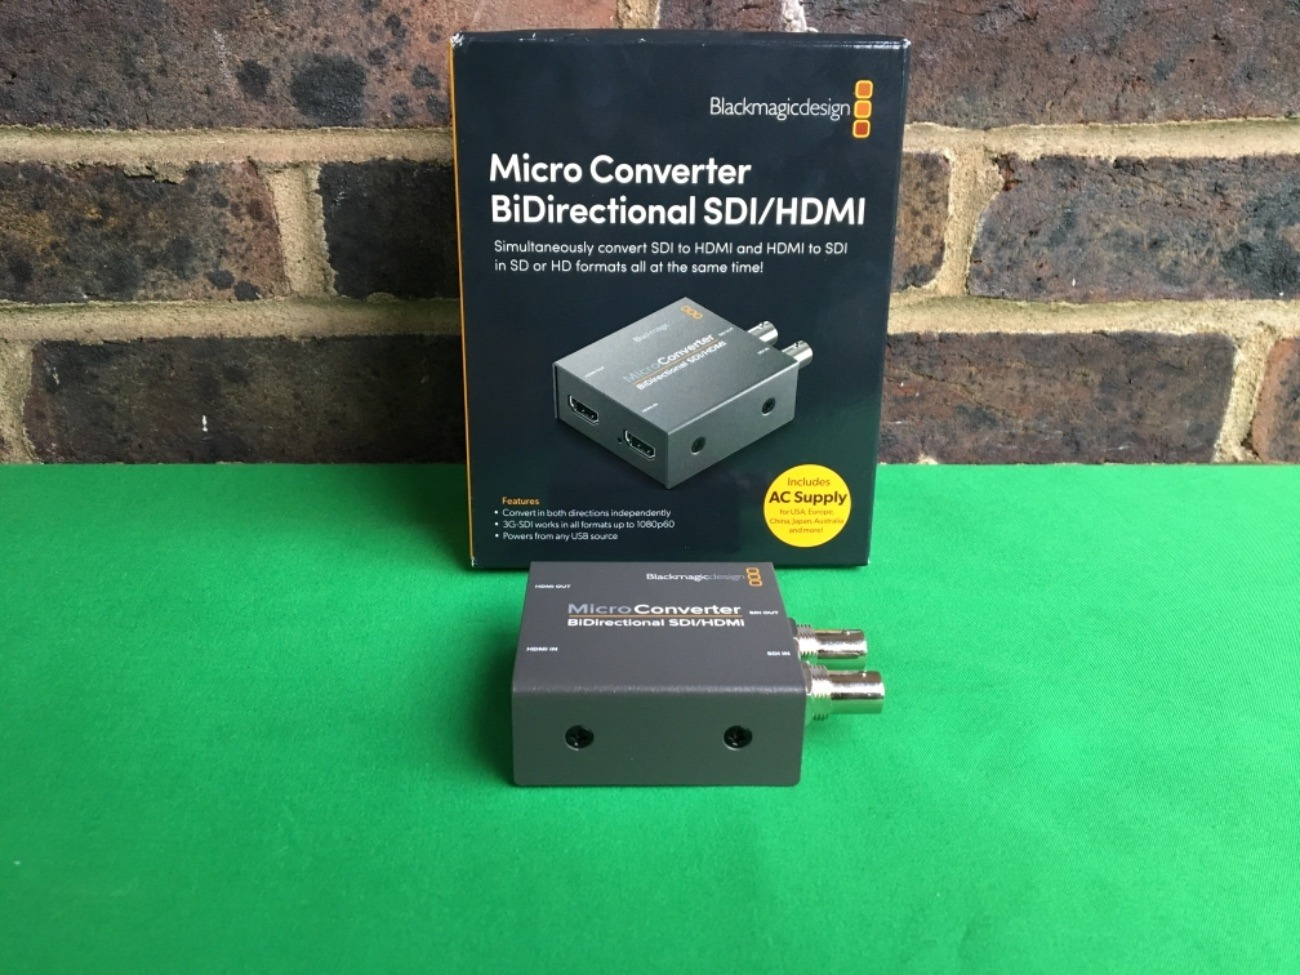 Rent 1x Hdmi To Sdi Sdi To Hdmi Converter Blackmagic Design Micro Converter Bidirectional Hdmi Sdi For Atem Mini In Croydon Rent For 11 00 Day 50 00 Week 330 00 Month Fat Llama